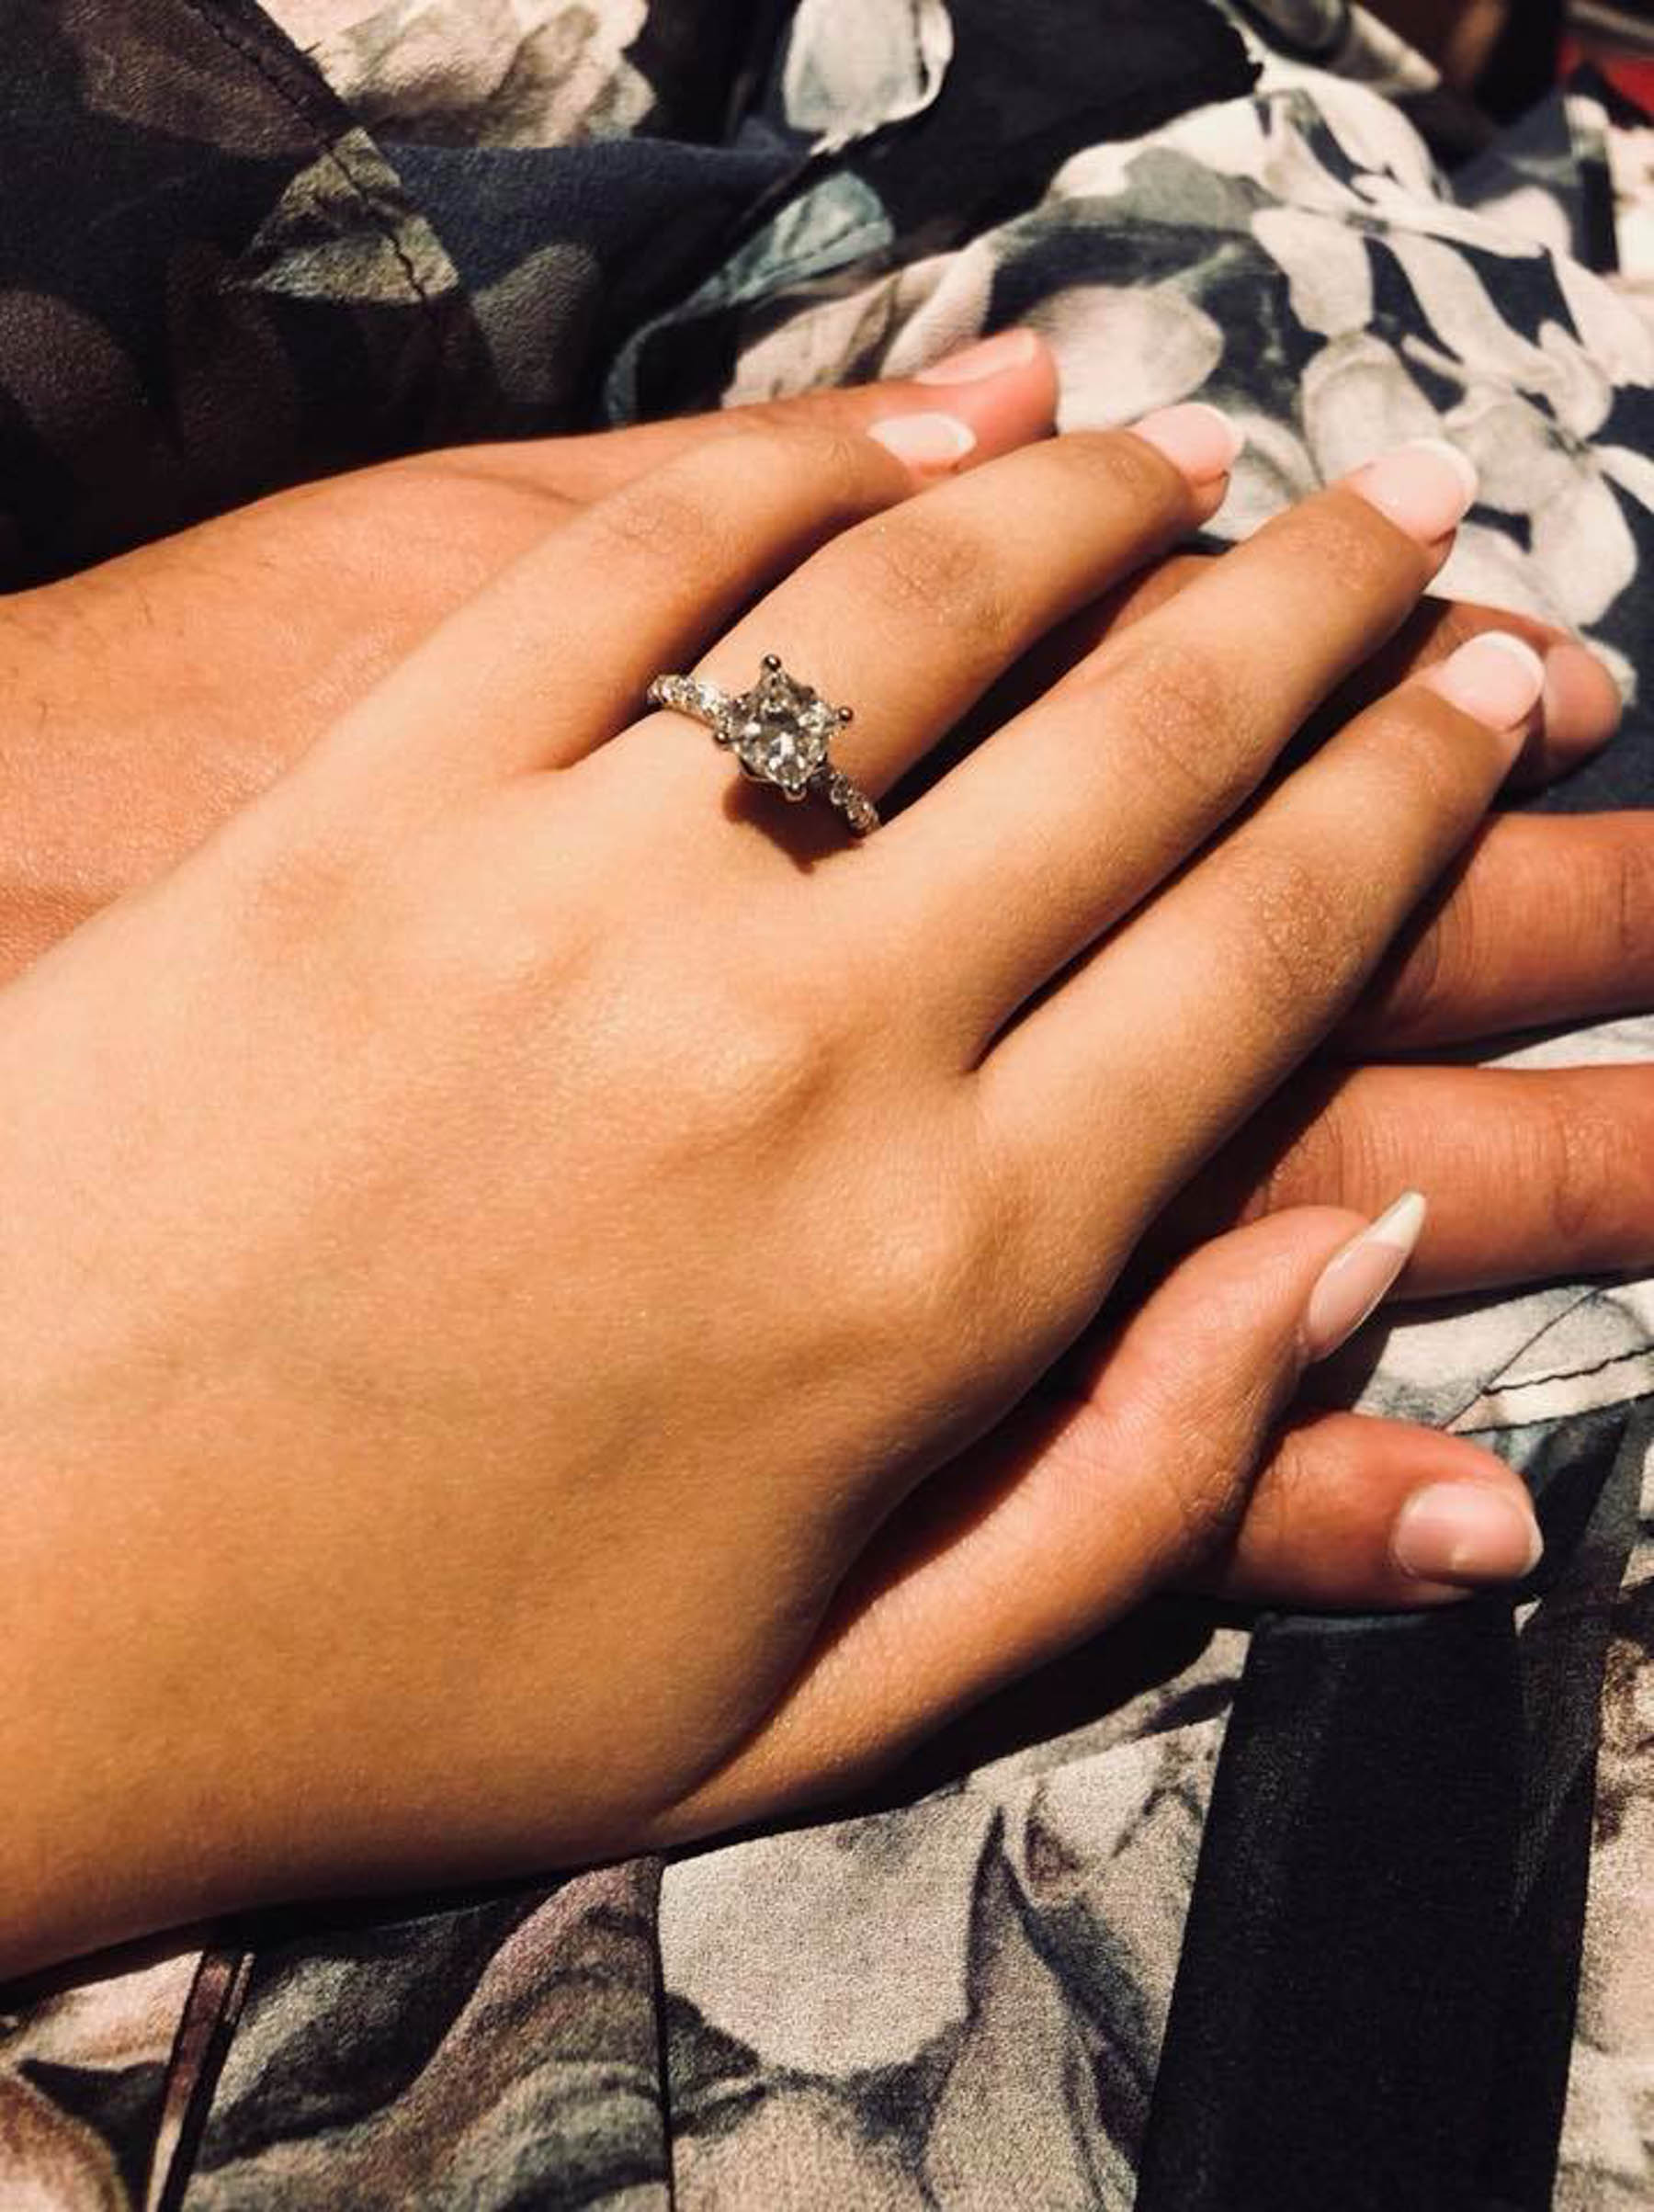 Sydney bride, Natasha's engagement ring was a stunning princess cut engagement ring from White Flash. Her big fat Indian wedding will be taking place in Sydney in September 2020.